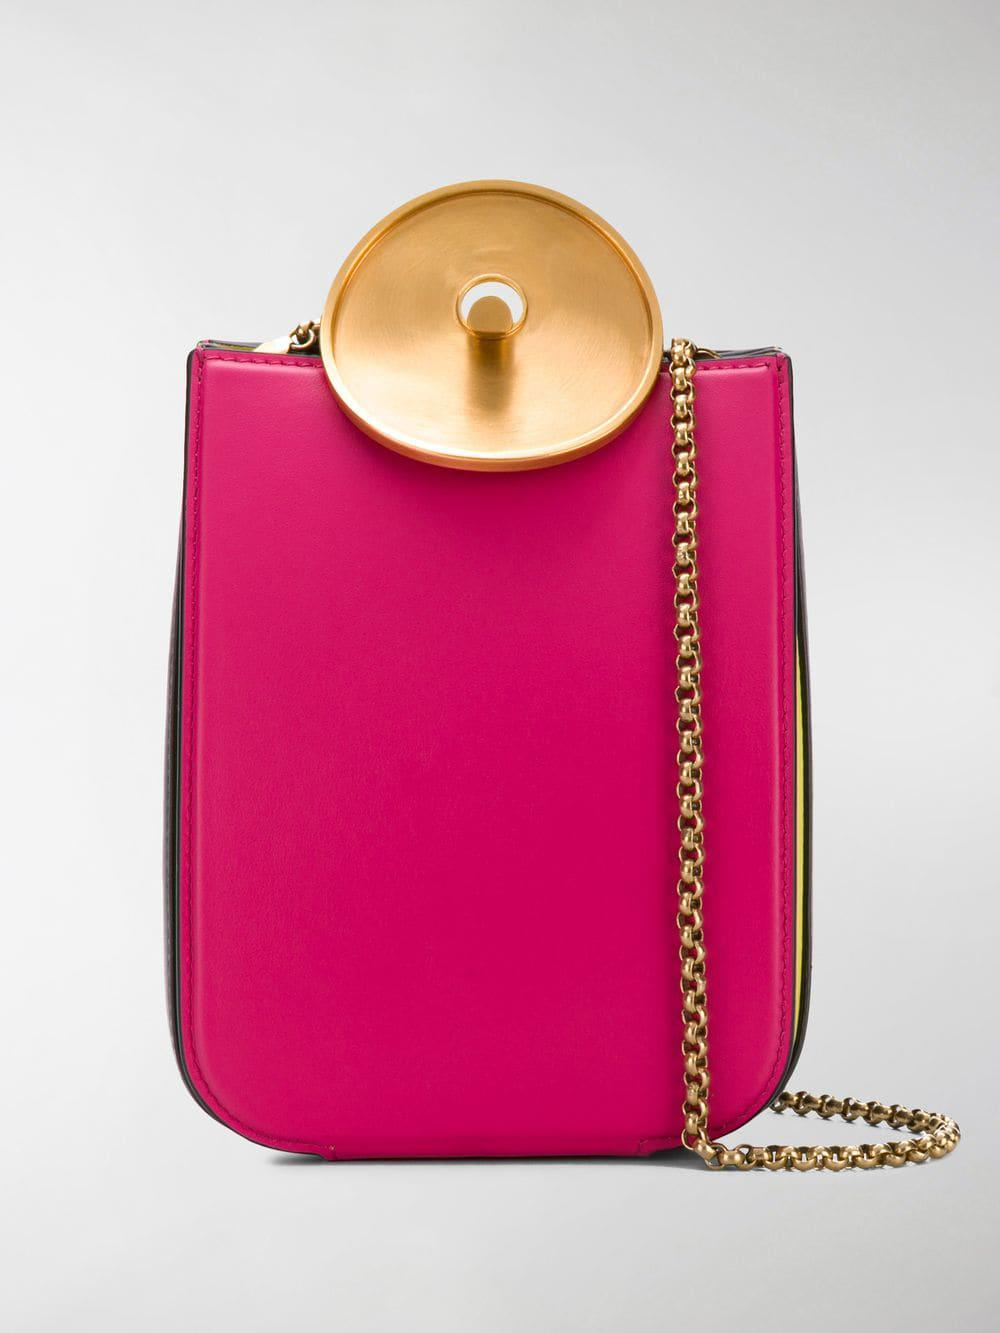 fd44b04cc67 Lyst - Marni Monile Crossbody Bag in Pink